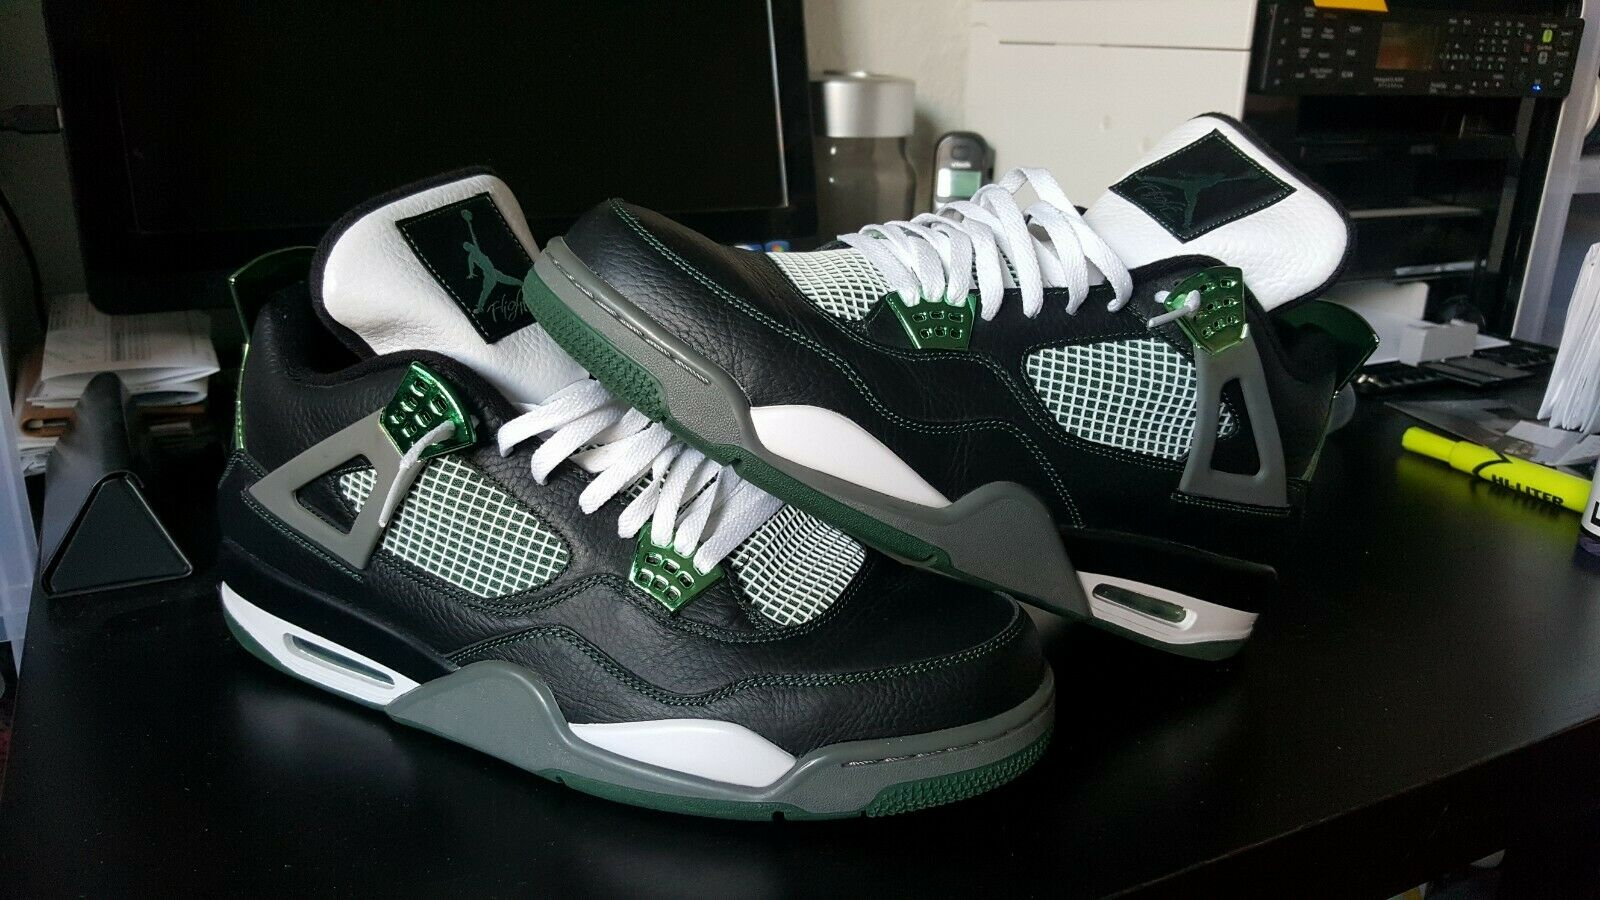 NIKE AIR JORDAN 4 RARE PROMO SAMPLE OREGON DUCKS SIZE 15 PE NRG MAX TRD SB